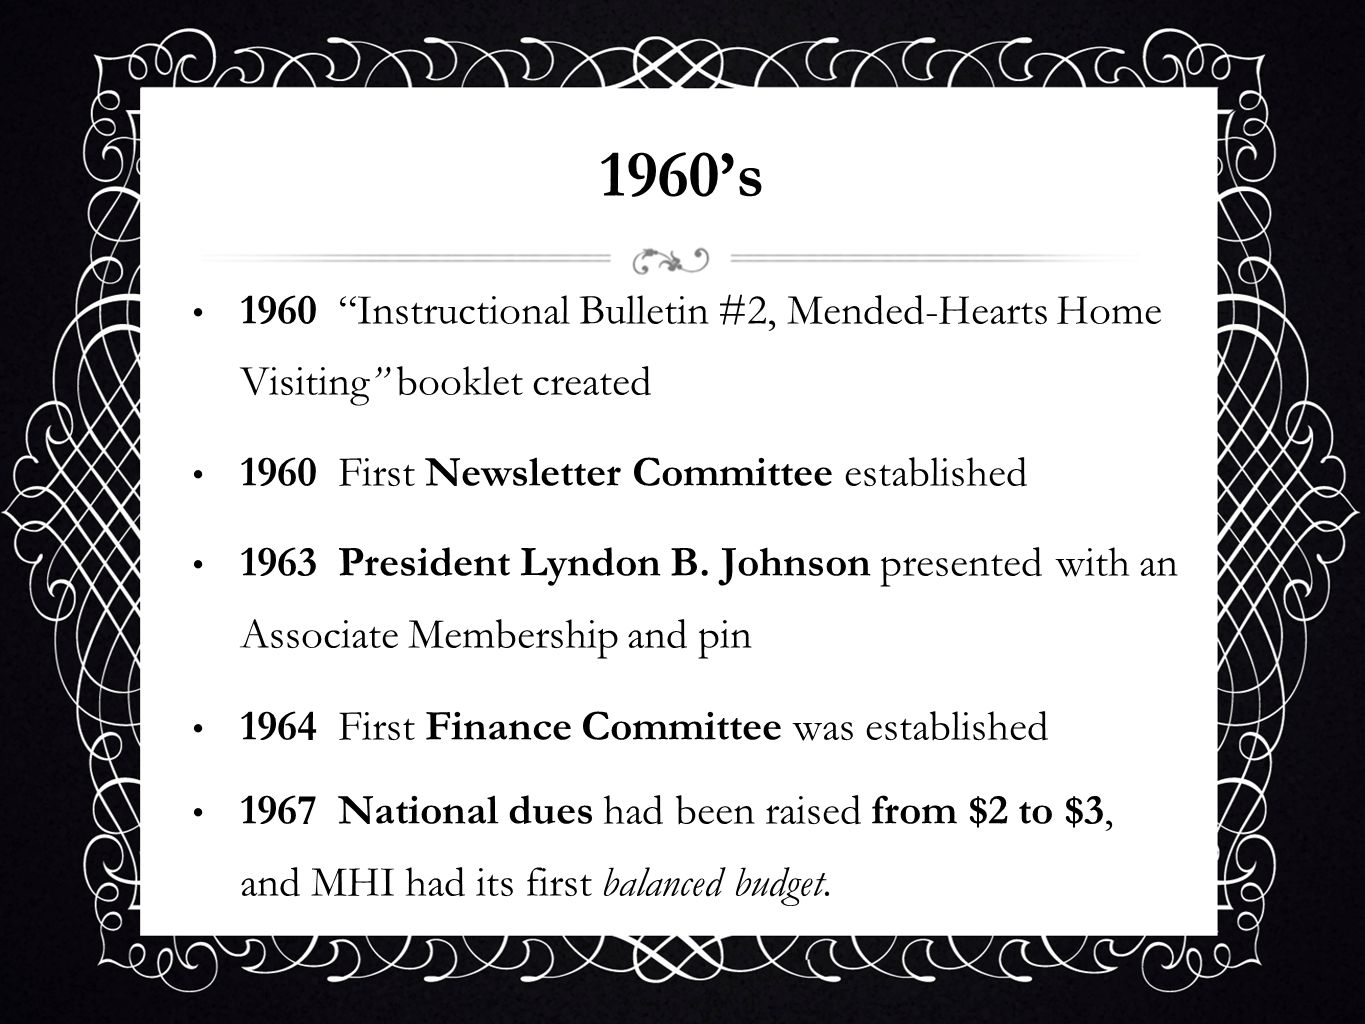 1960's1960 Instructional Bulletin #2, Mended-Hearts Home Visiting booklet created. 1960 First Newsletter Committee established.